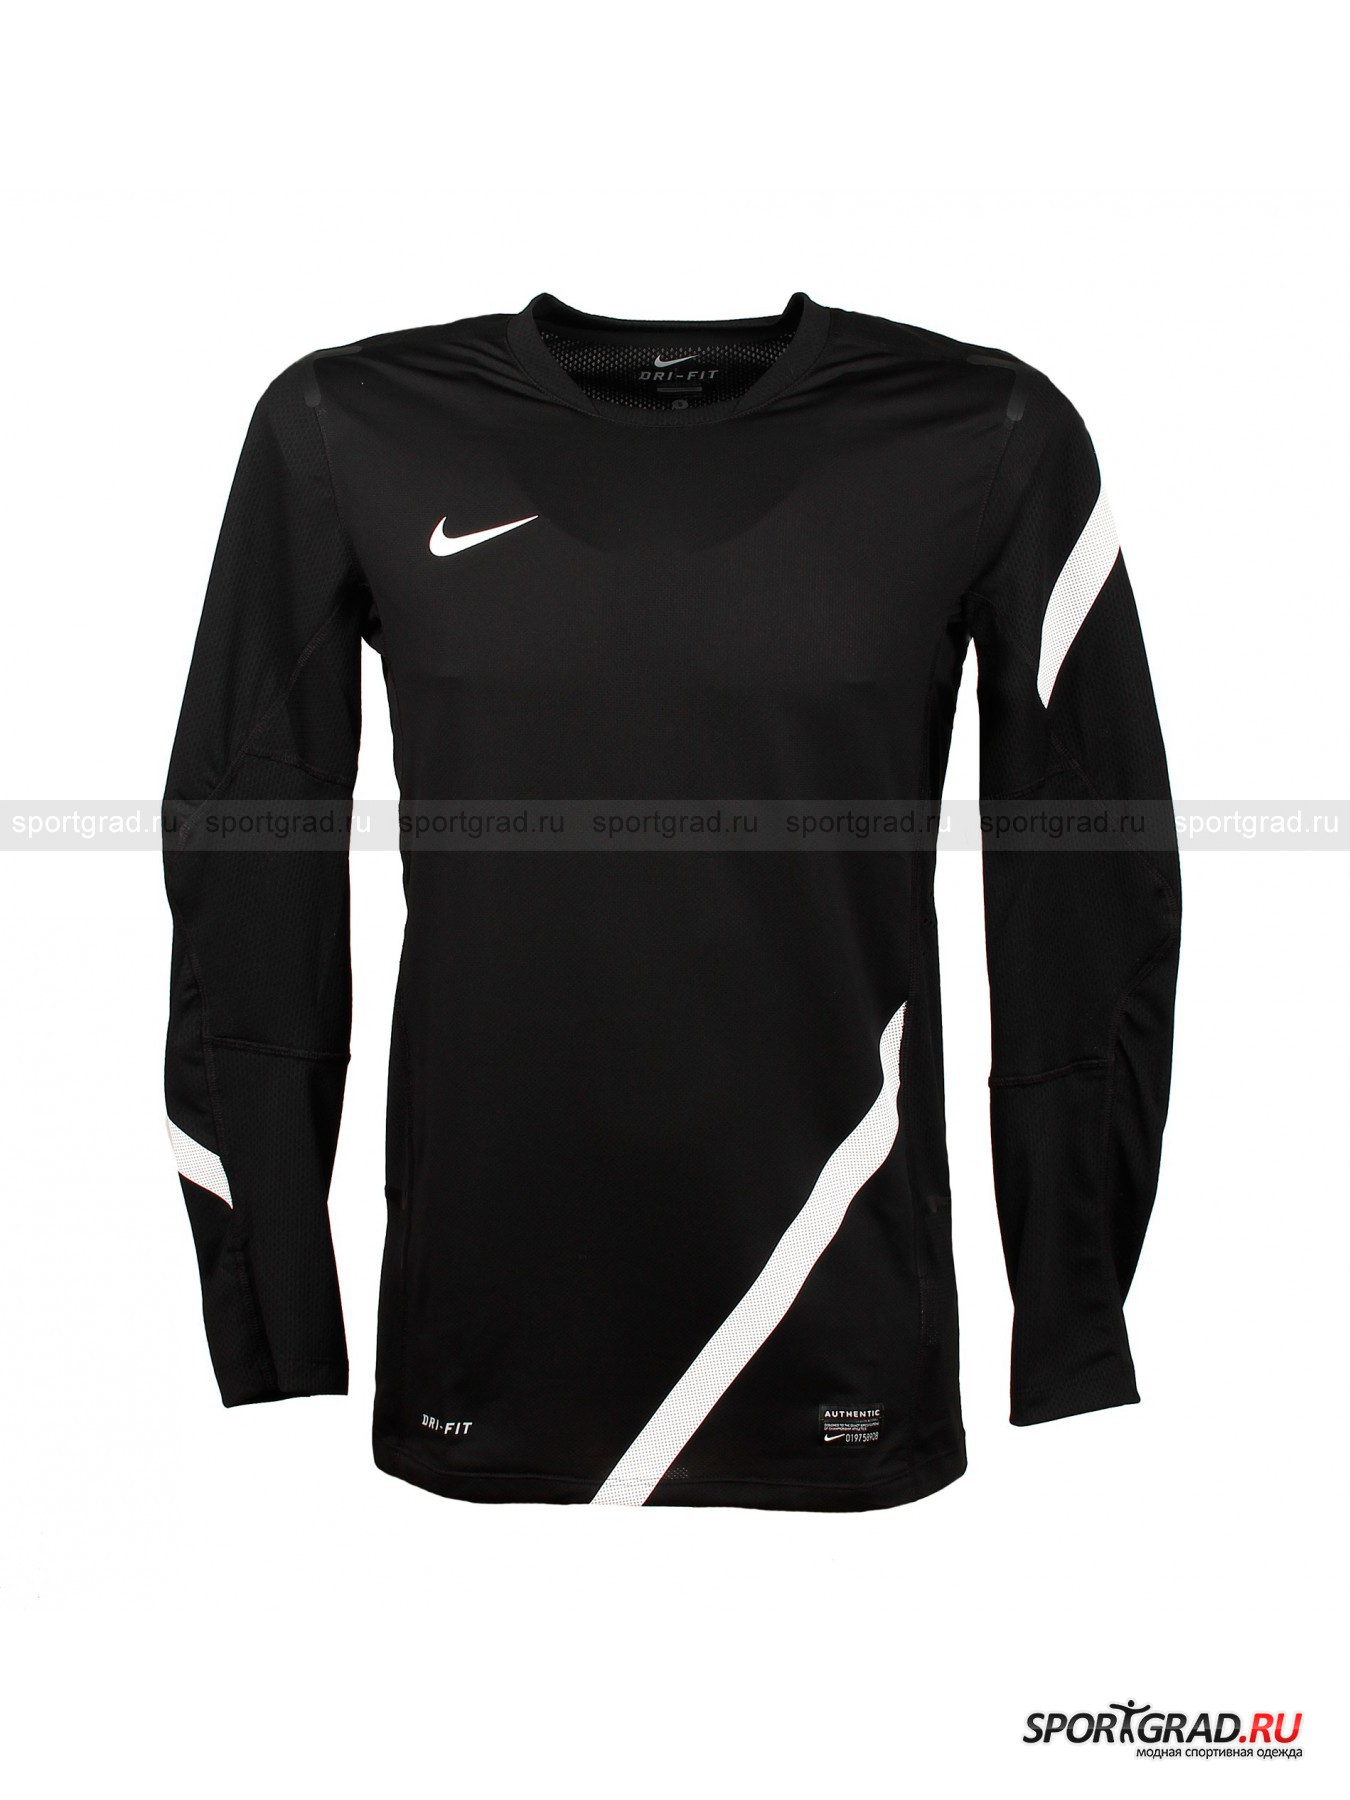 Джемпер мужской LS TRAINING TOP NIKE